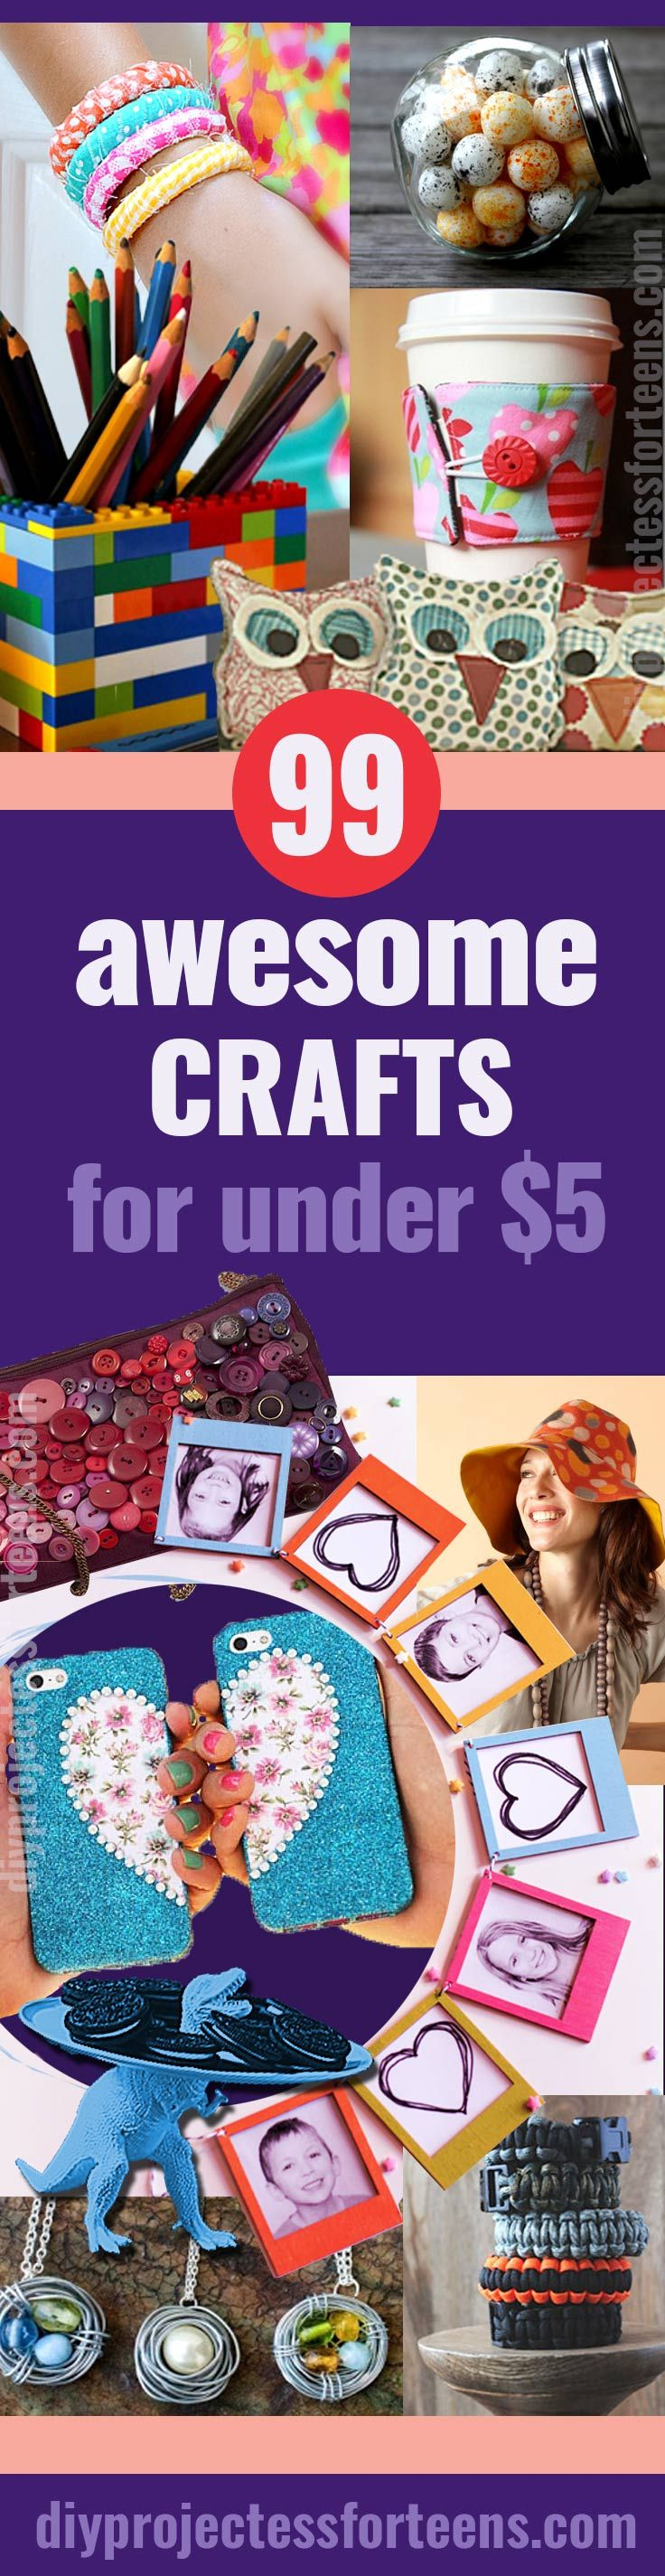 DIY Crafts You Can Make for Less Than $5. Cool and Cheap DIY Project Ideas for Teens, Tweens, Teenager Girls and Adults. Fun Decor, Gifts, Accessories, Fashion and Photo Ideas